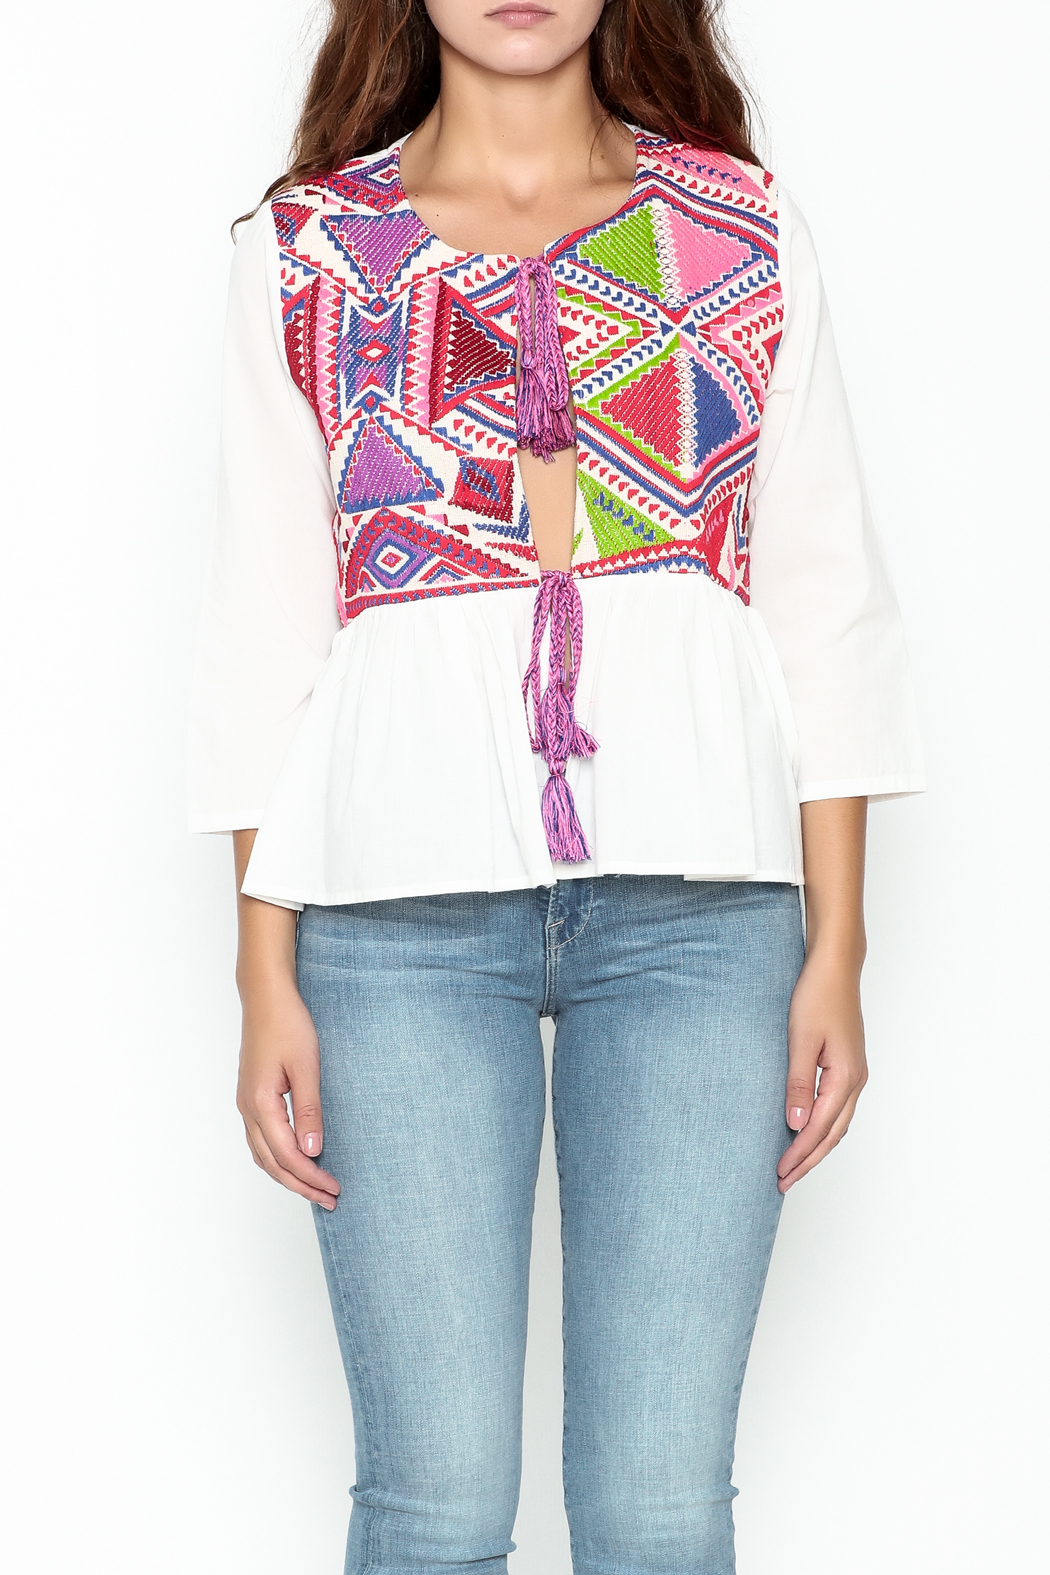 Velzera Colorful Embroidered Top - Front Full Image